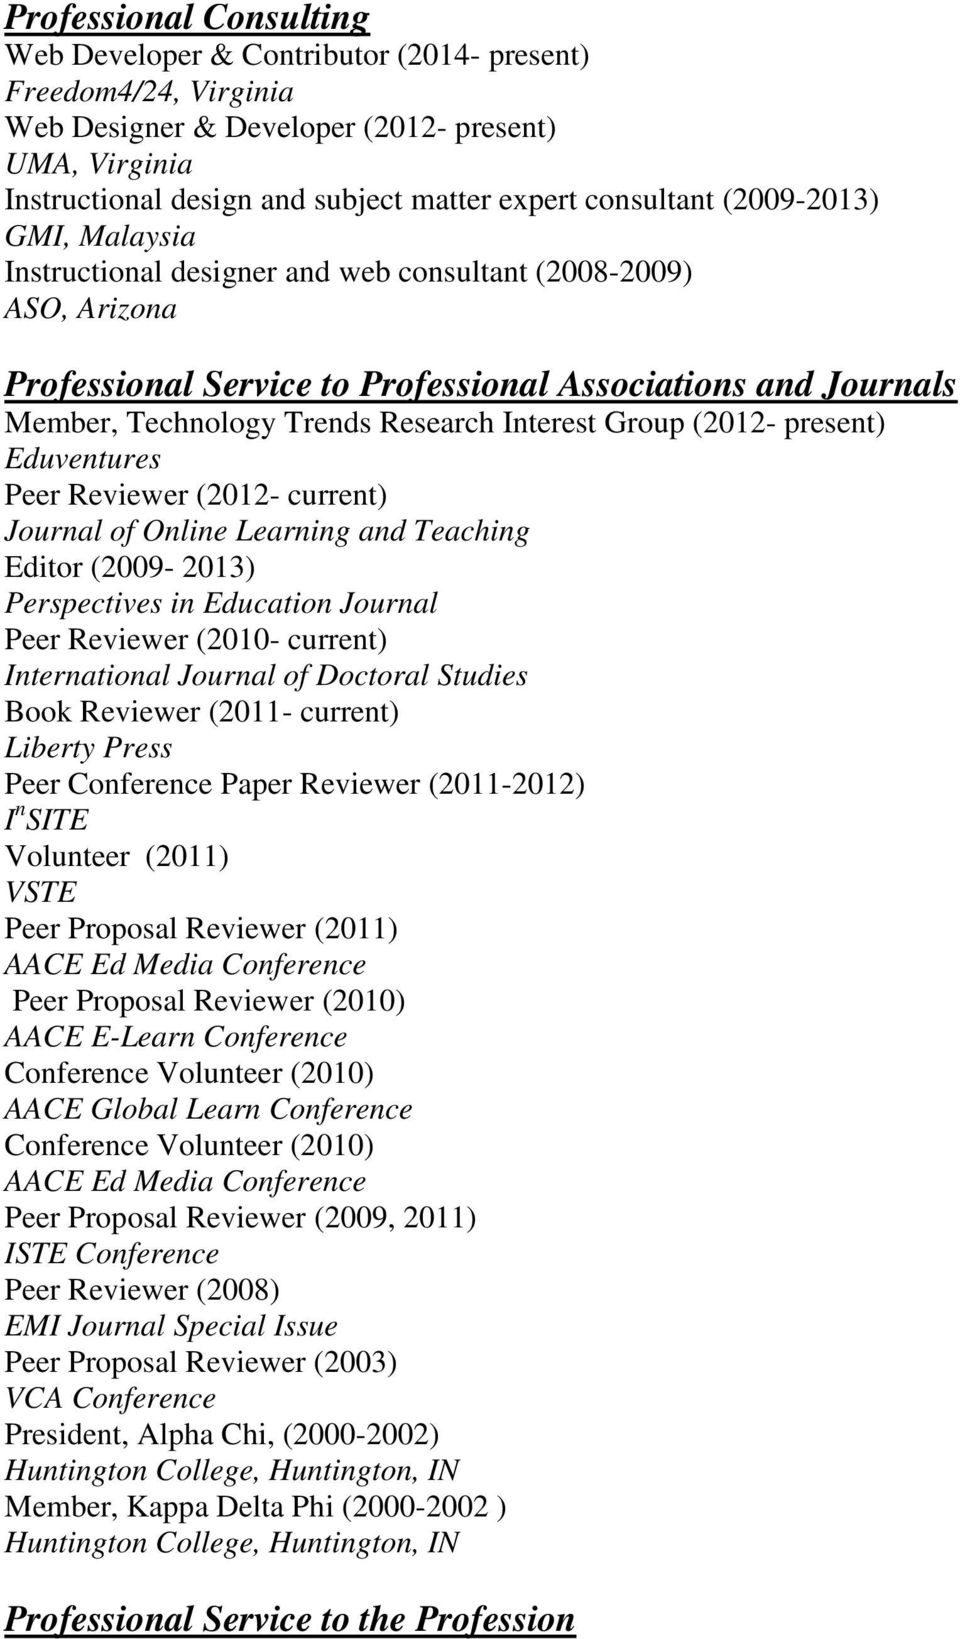 Research Interest Group (2012- present) Eduventures Peer Reviewer (2012- current) Journal of Online Learning and Teaching Editor (2009-2013) Perspectives in Education Journal Peer Reviewer (2010-